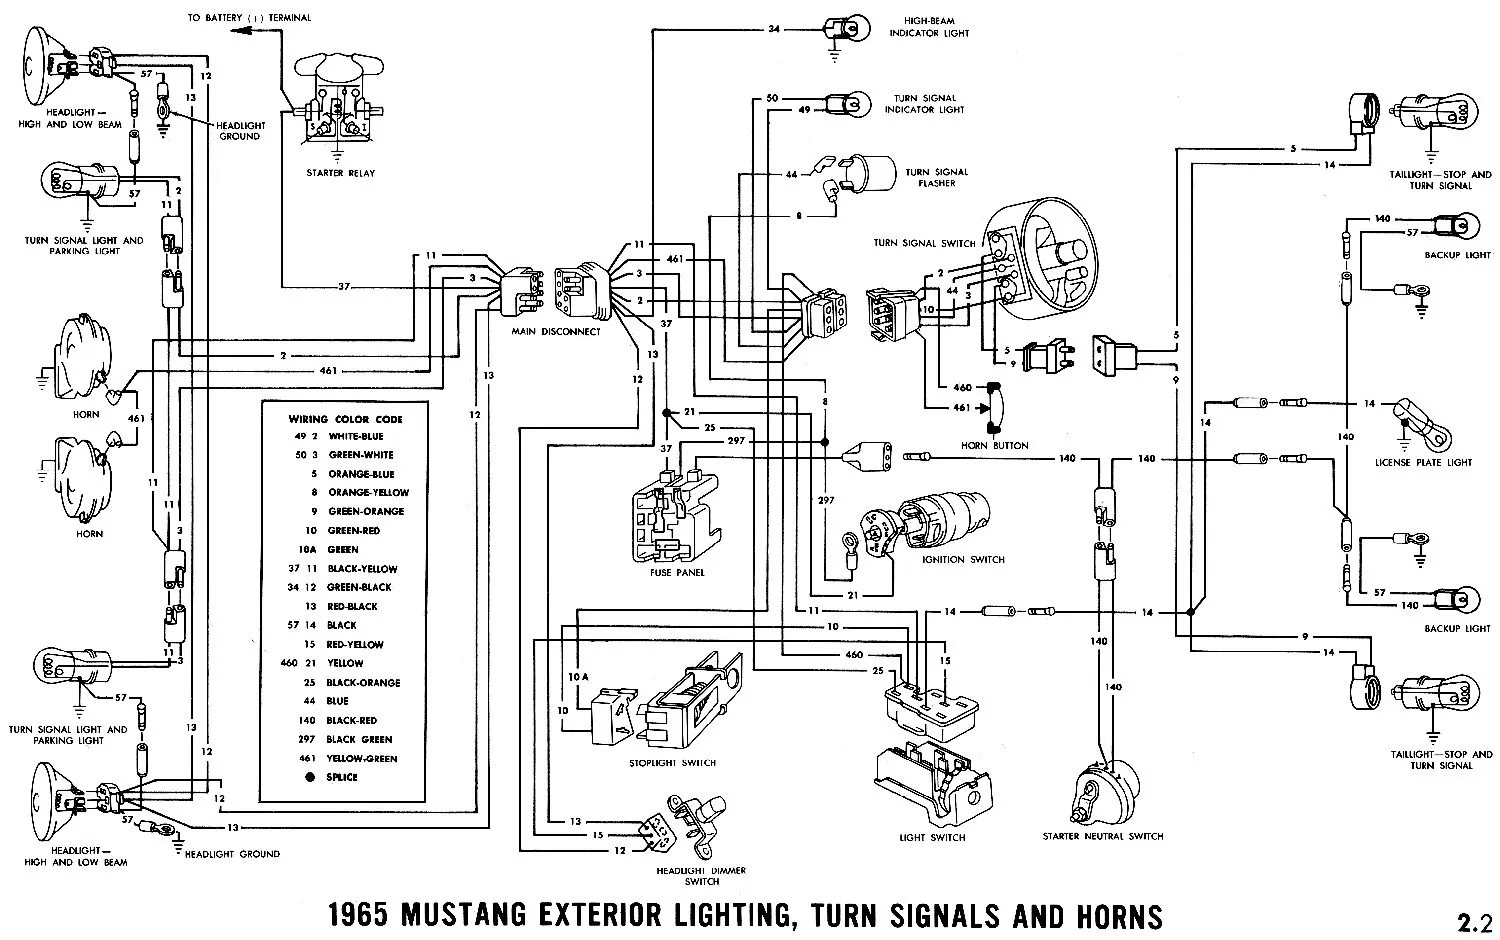 hight resolution of 1965 mustang fuse box diagram wiring diagrams konsult66 mustang fuse box diagram wiring schematic share circuit